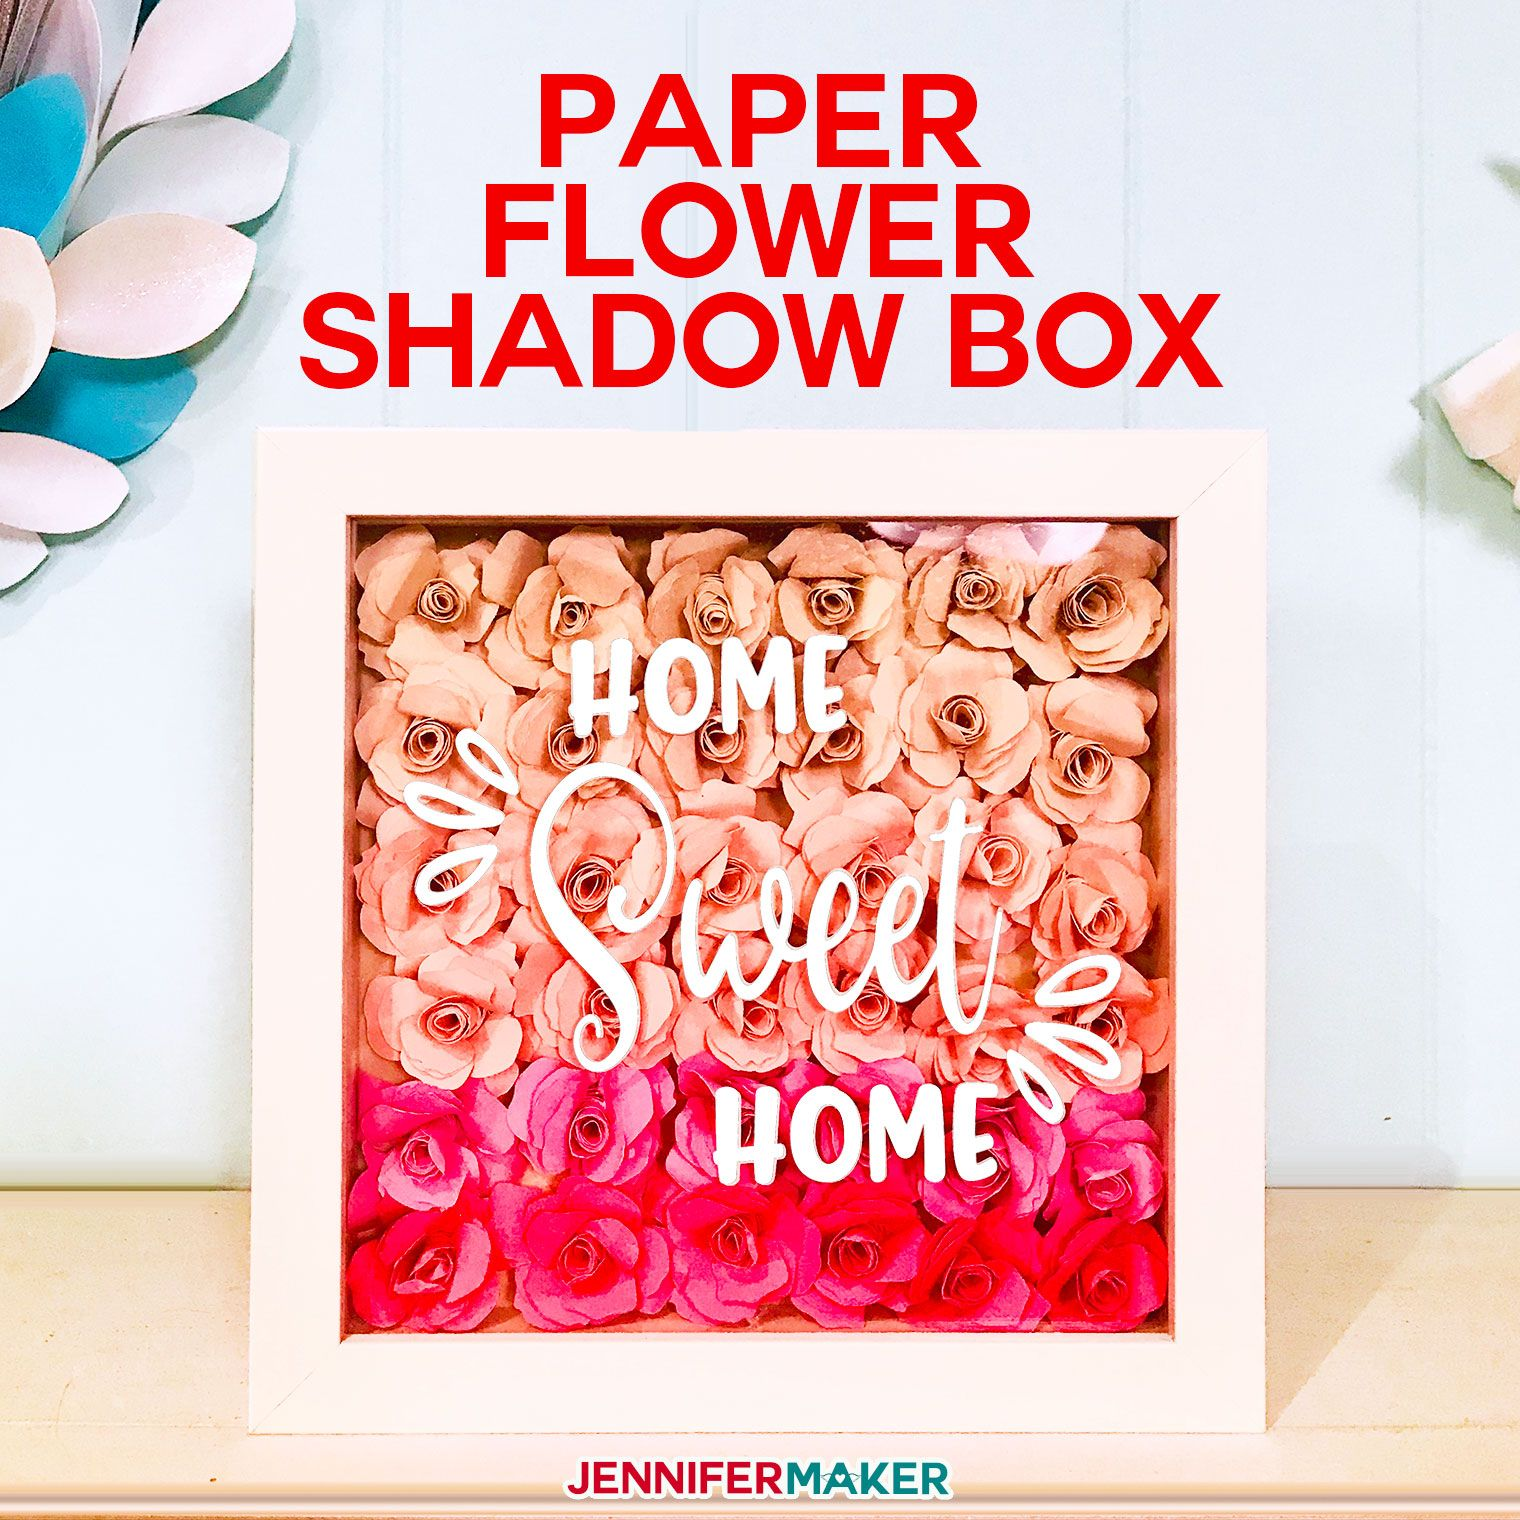 Paper Flower Shadow Box with Sizing & Quantity Charts in